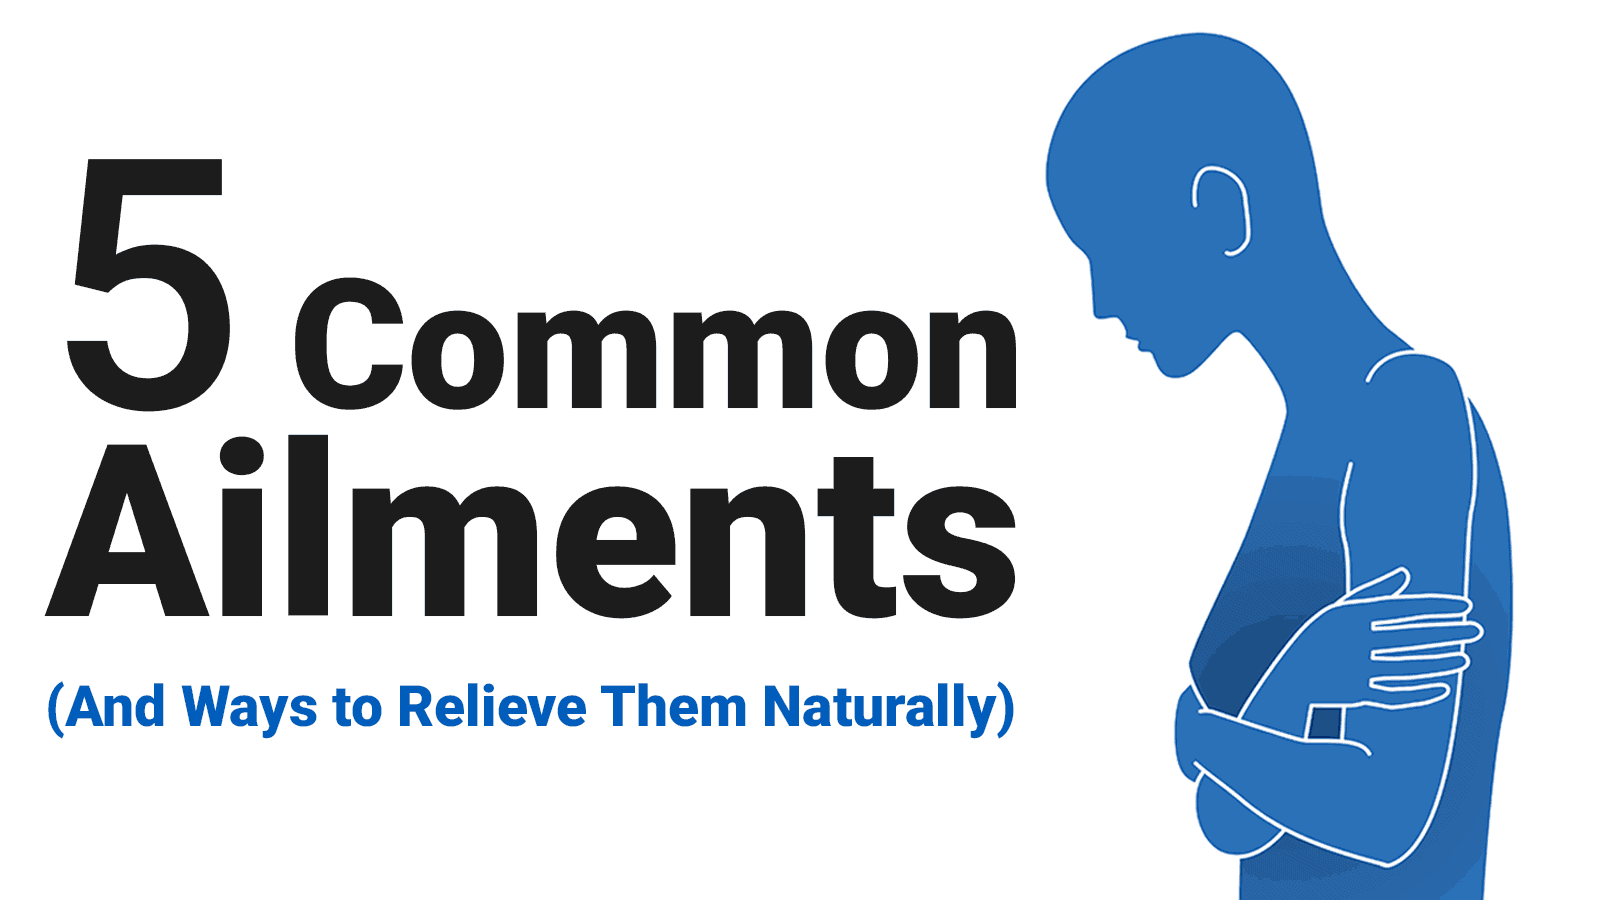 common ailments